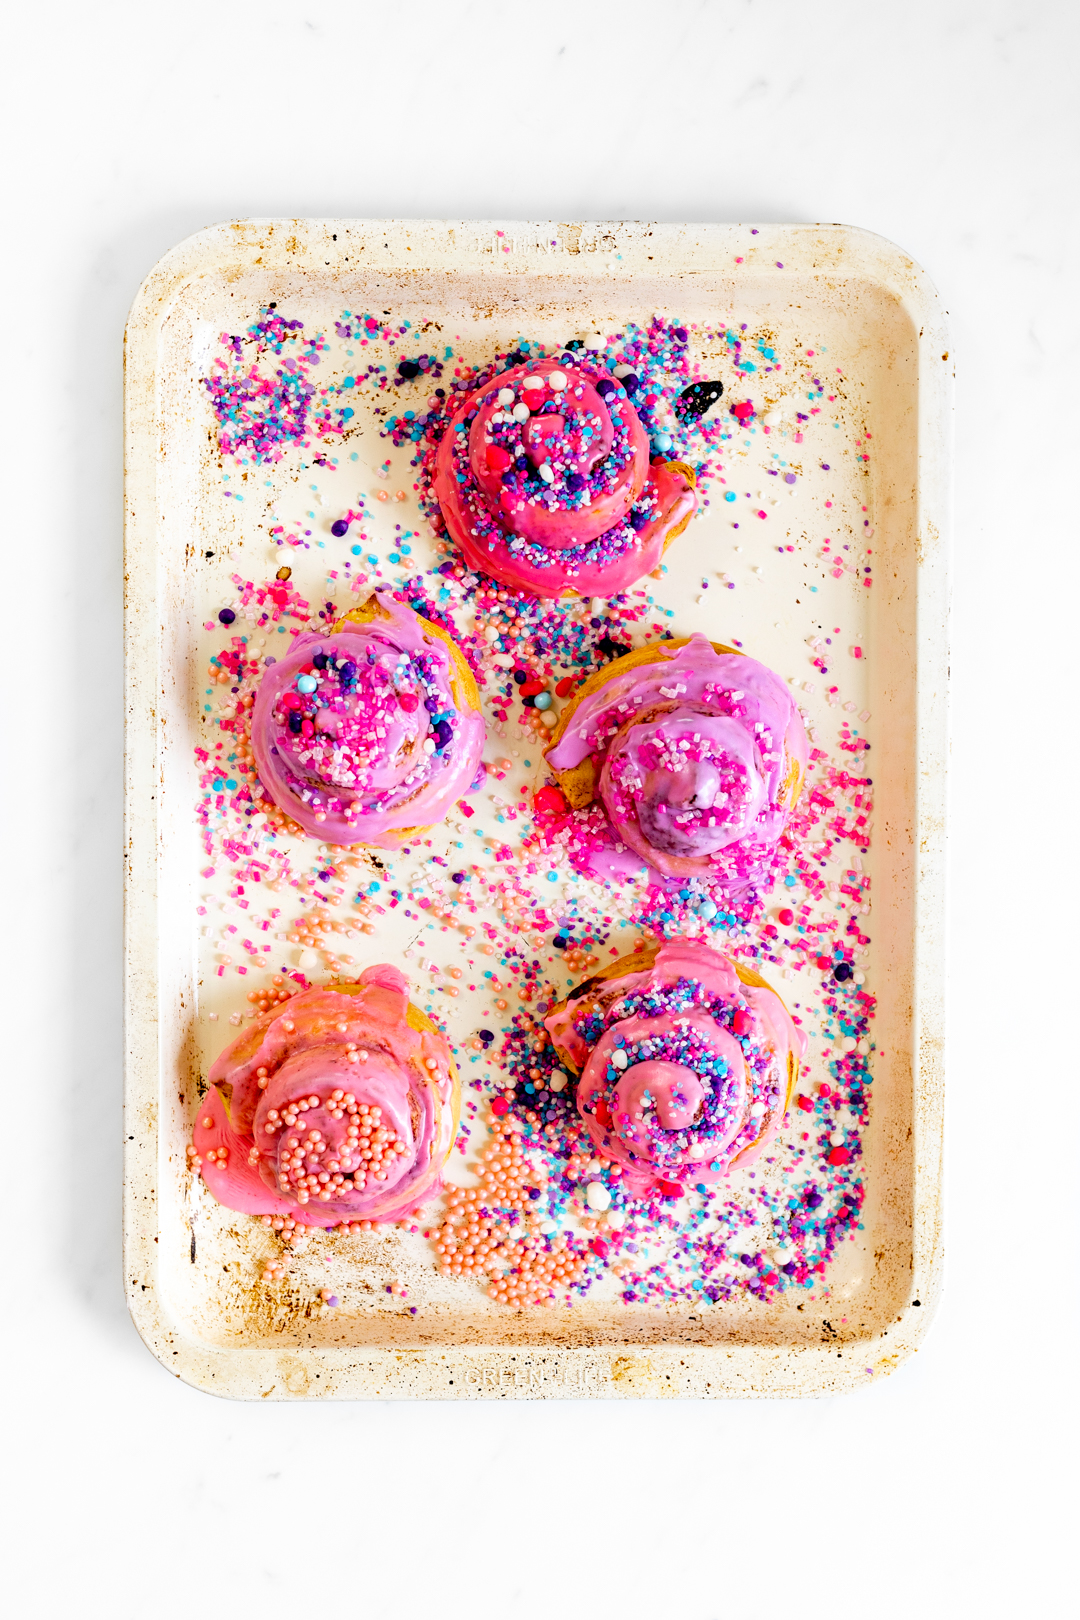 pink cinnamon rolls with colorful sprinkles